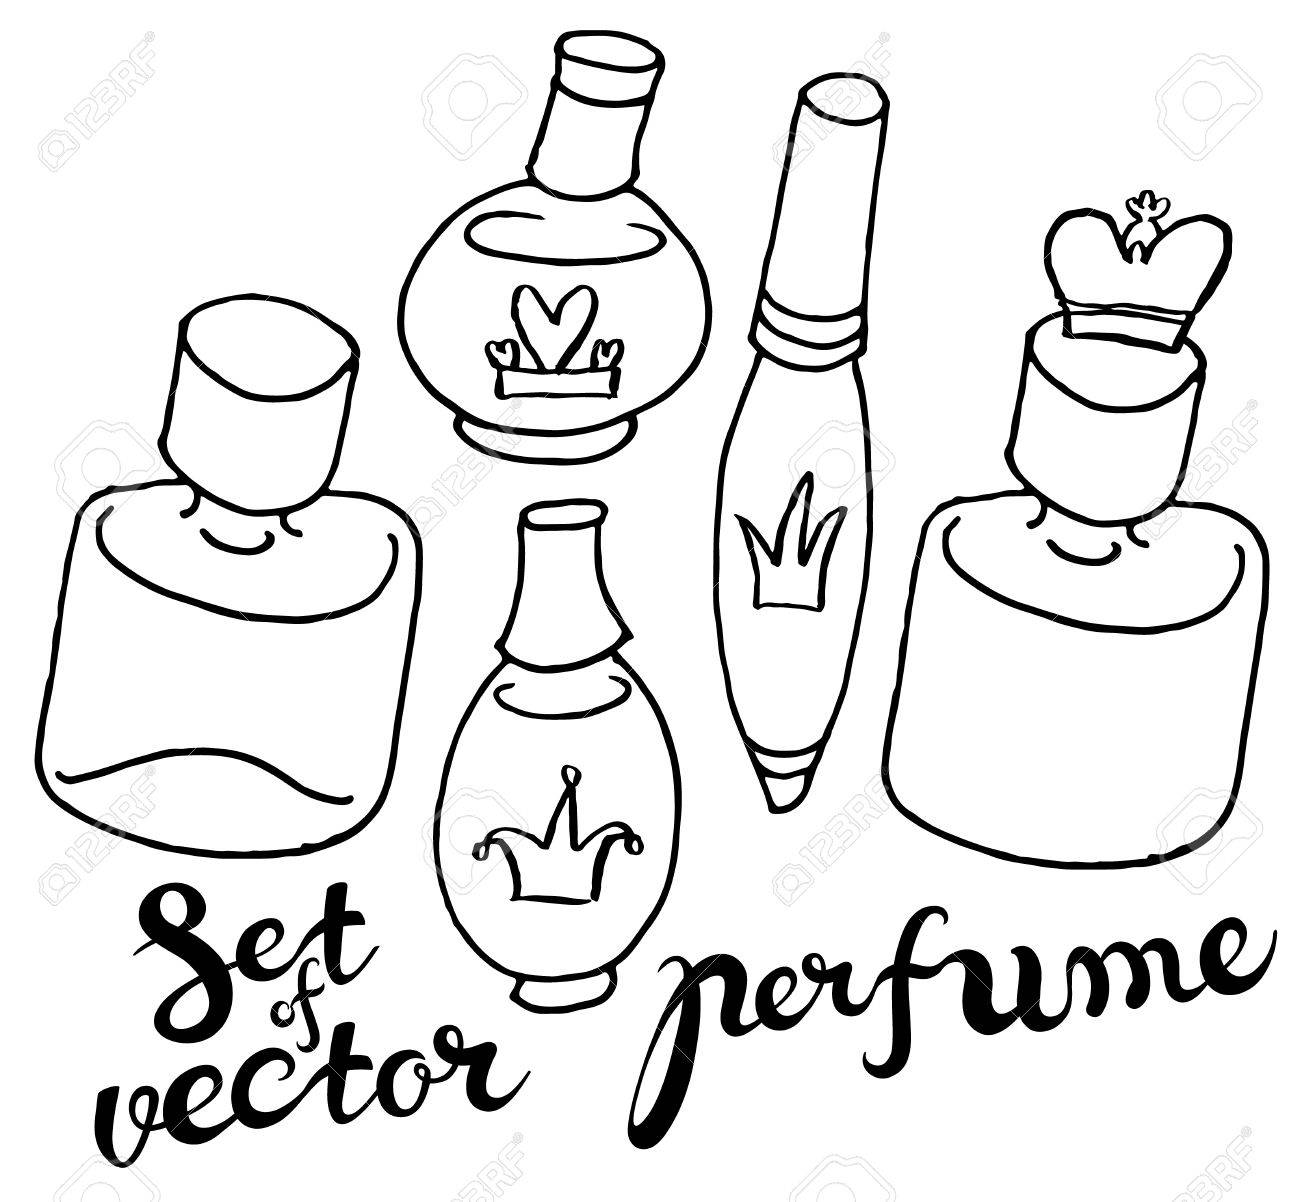 Hand Draw Vector Perfume Bottles In Naive Style With Hand Lettering